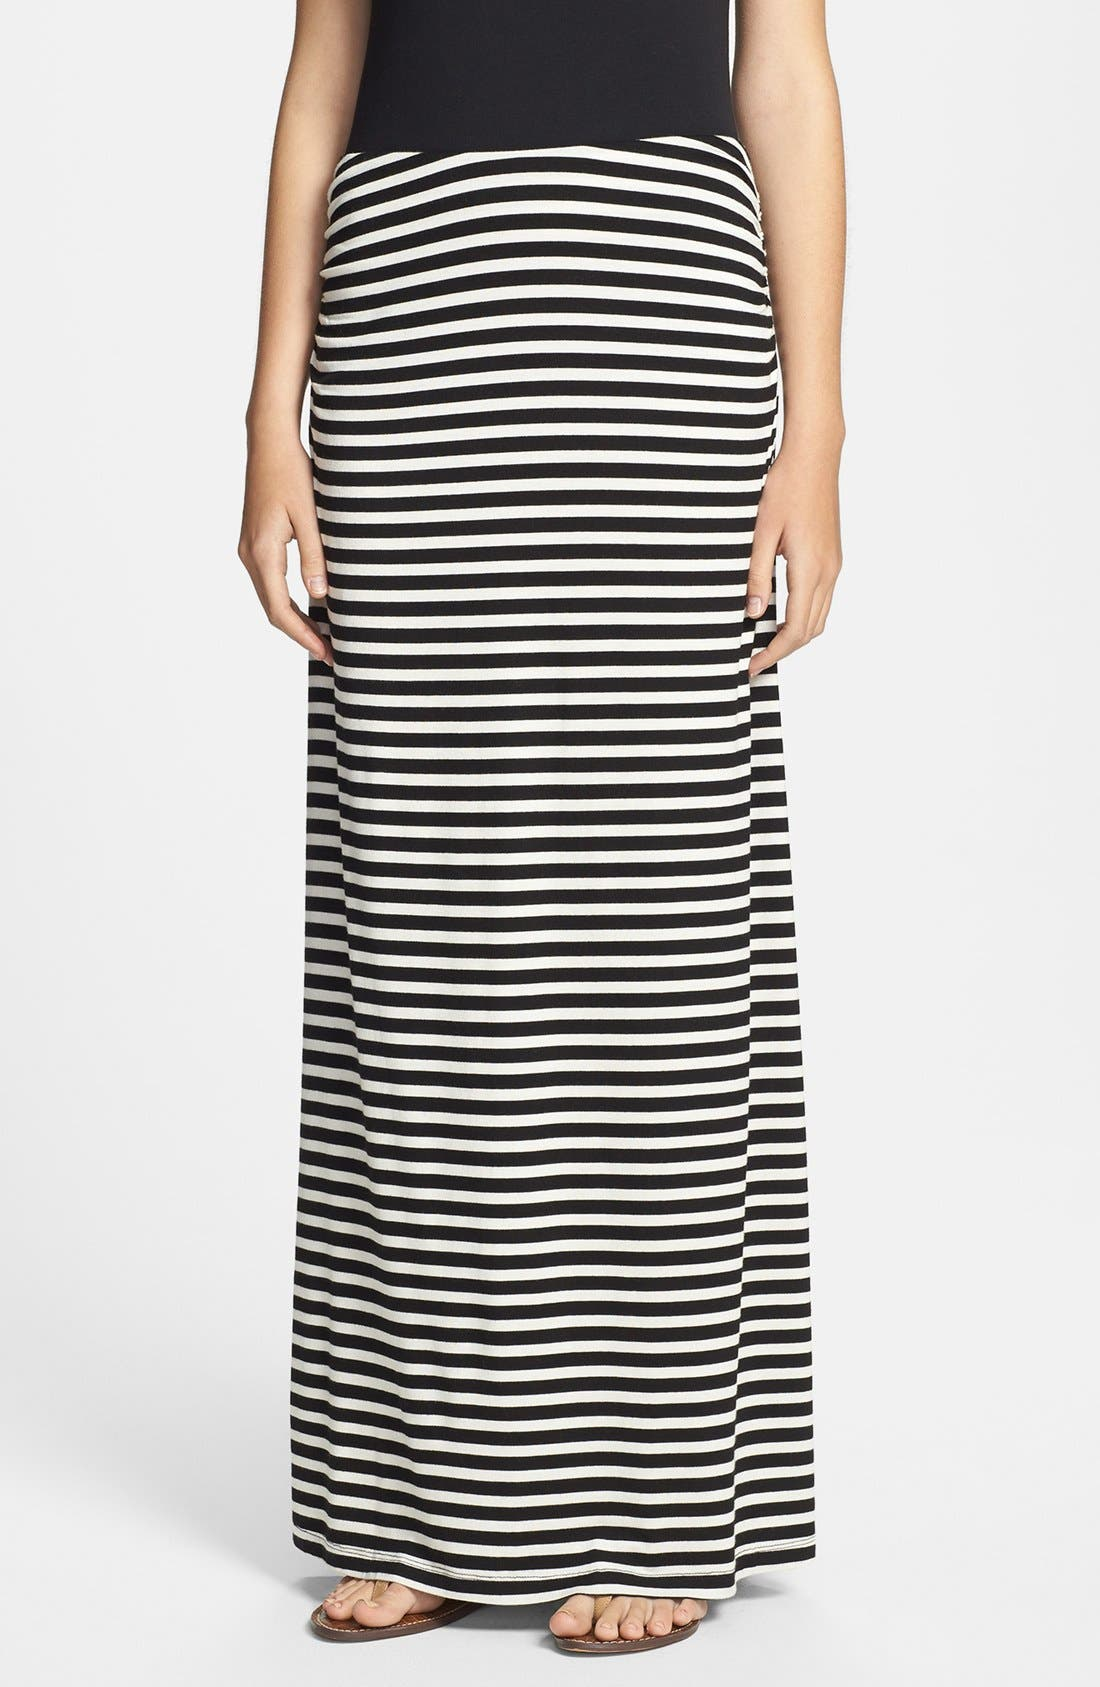 Convertible Maxi Skirt,                         Main,                         color, Black/ White Stripe